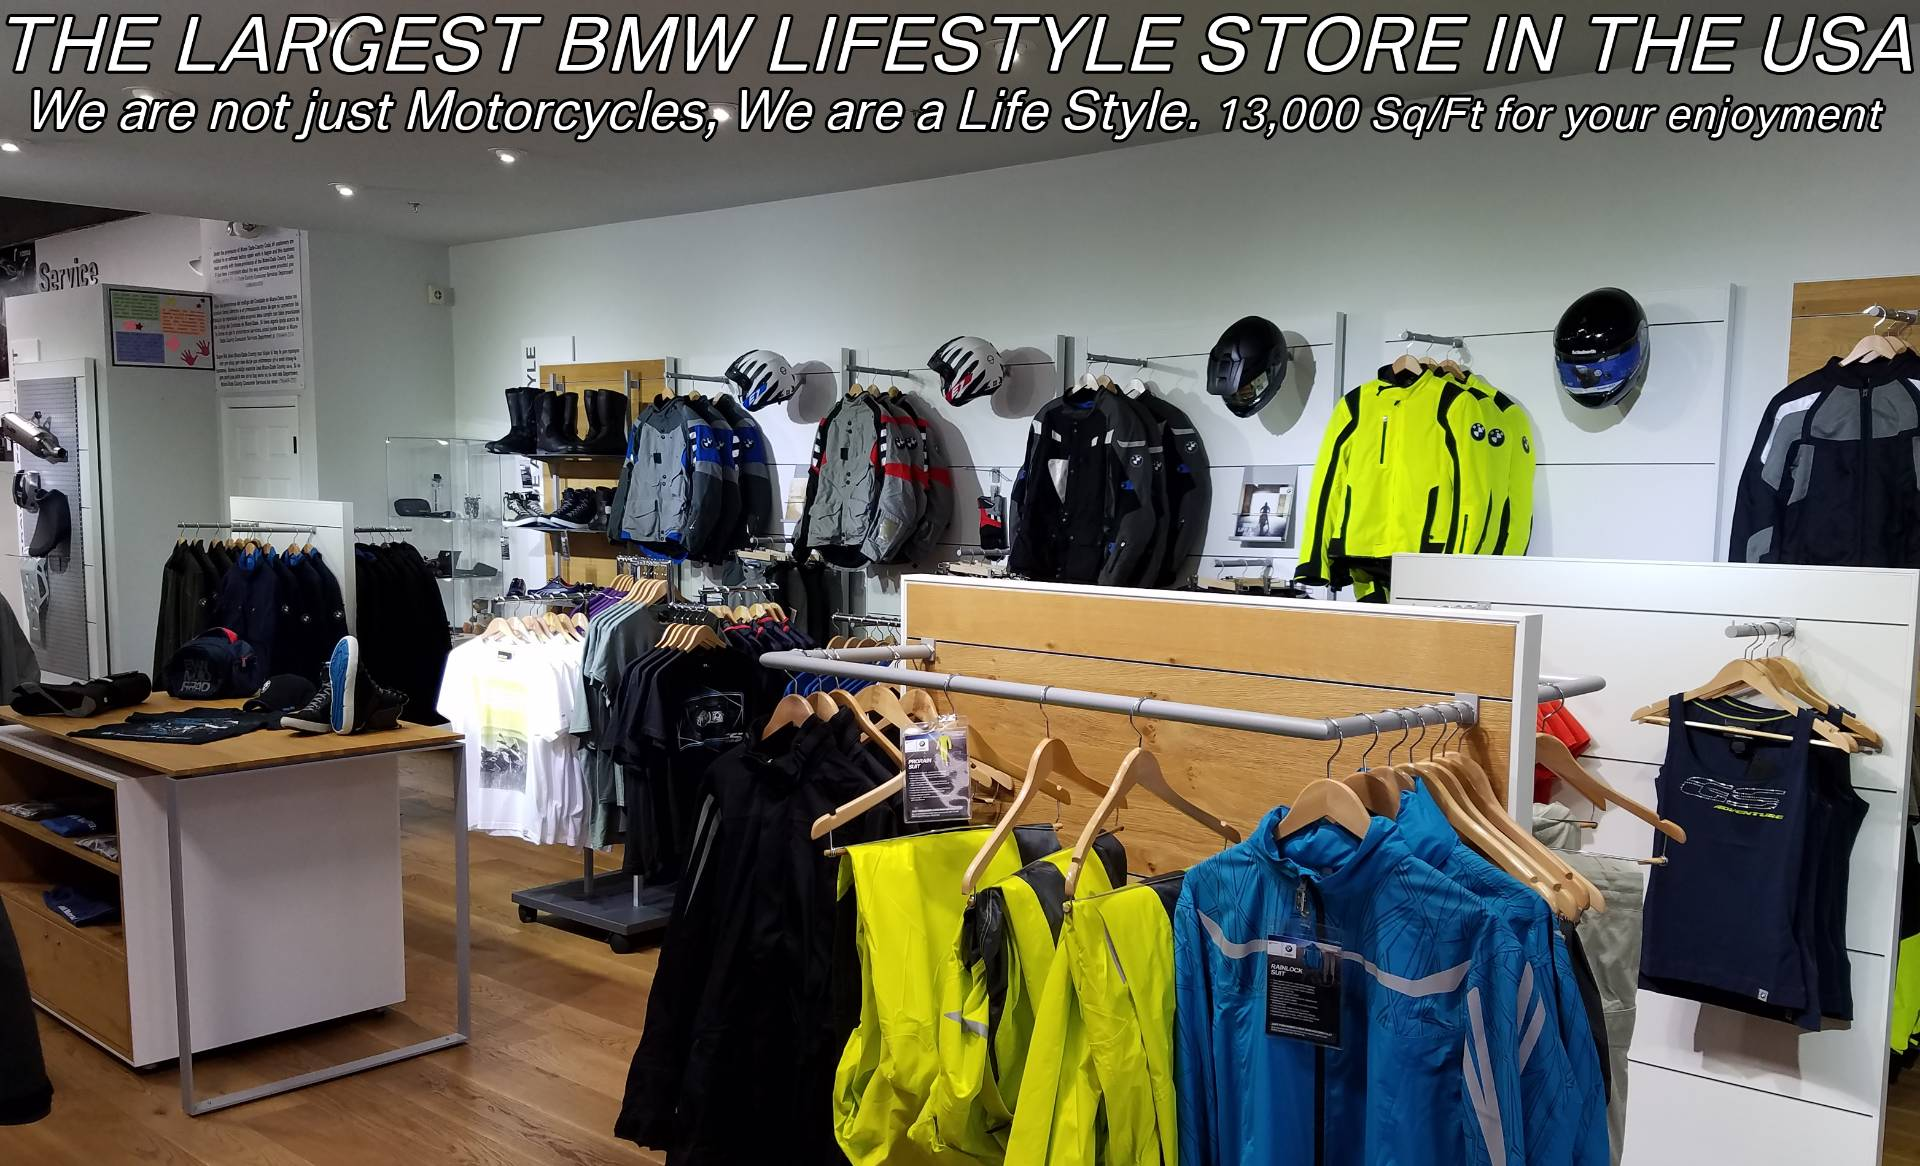 Used 2011 BMW R 1200 GSA For Sale, Pre owned BMW R 1200GSA For Sale, BMW Motorcycle R1200GSA, BMW Motorcycles of Miami, Motorcycles of Miami, Motorcycles Miami - Photo 57